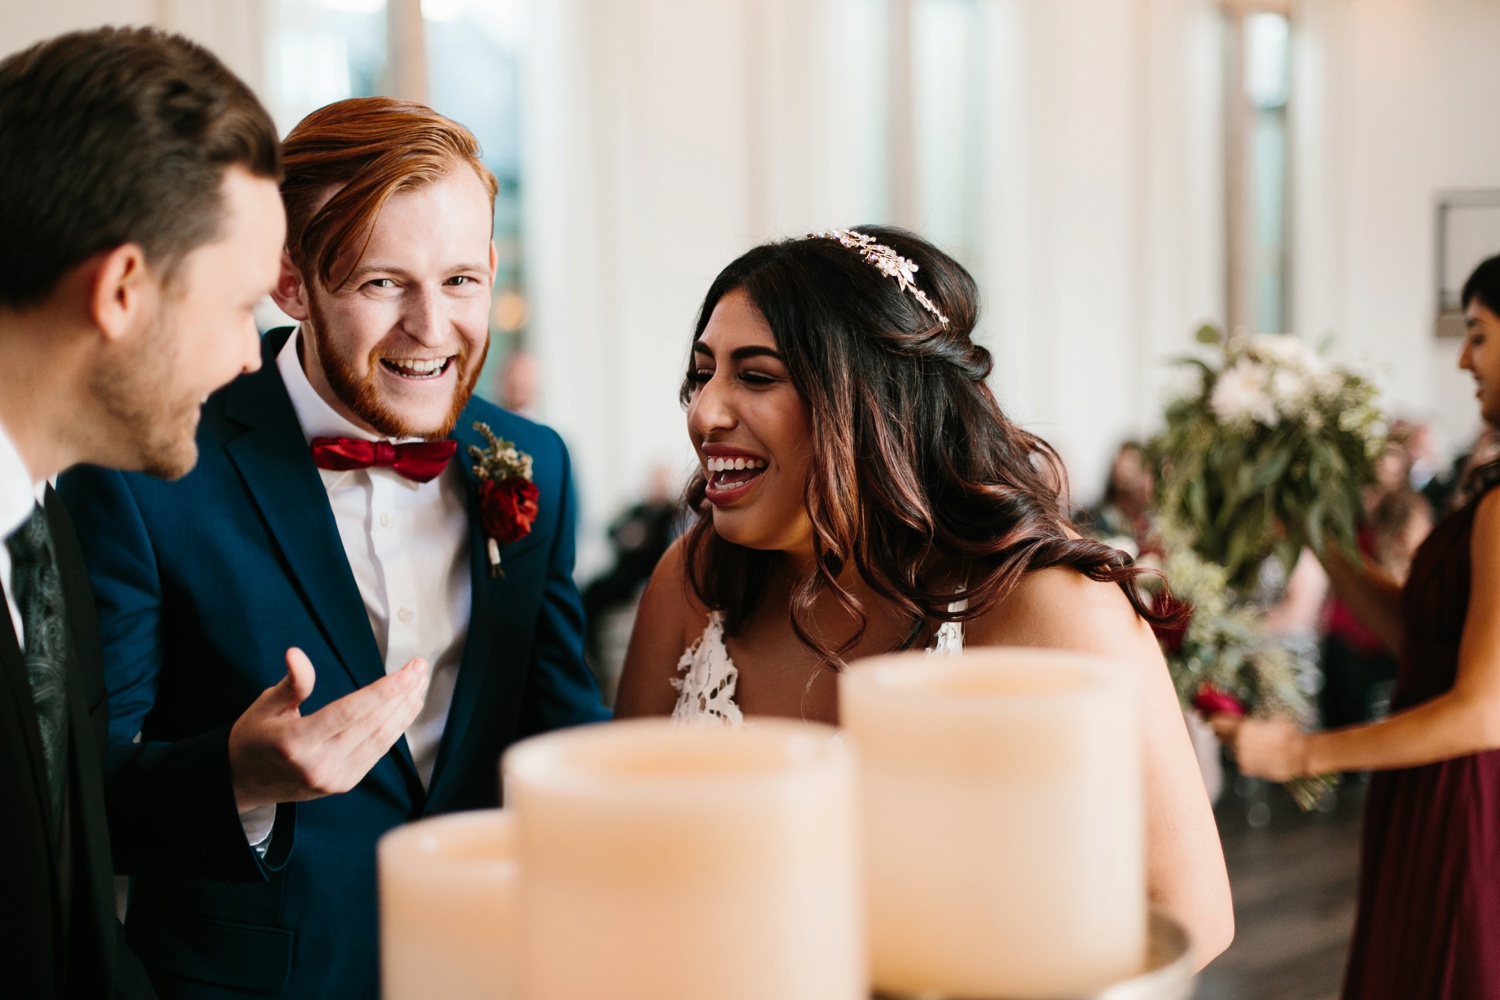 Grant + Lysette | a vibrant, deep burgundy and navy, and mixed metals wedding at Hidden Pines Chapel by North Texas Wedding Photographer Rachel Meagan Photography 096